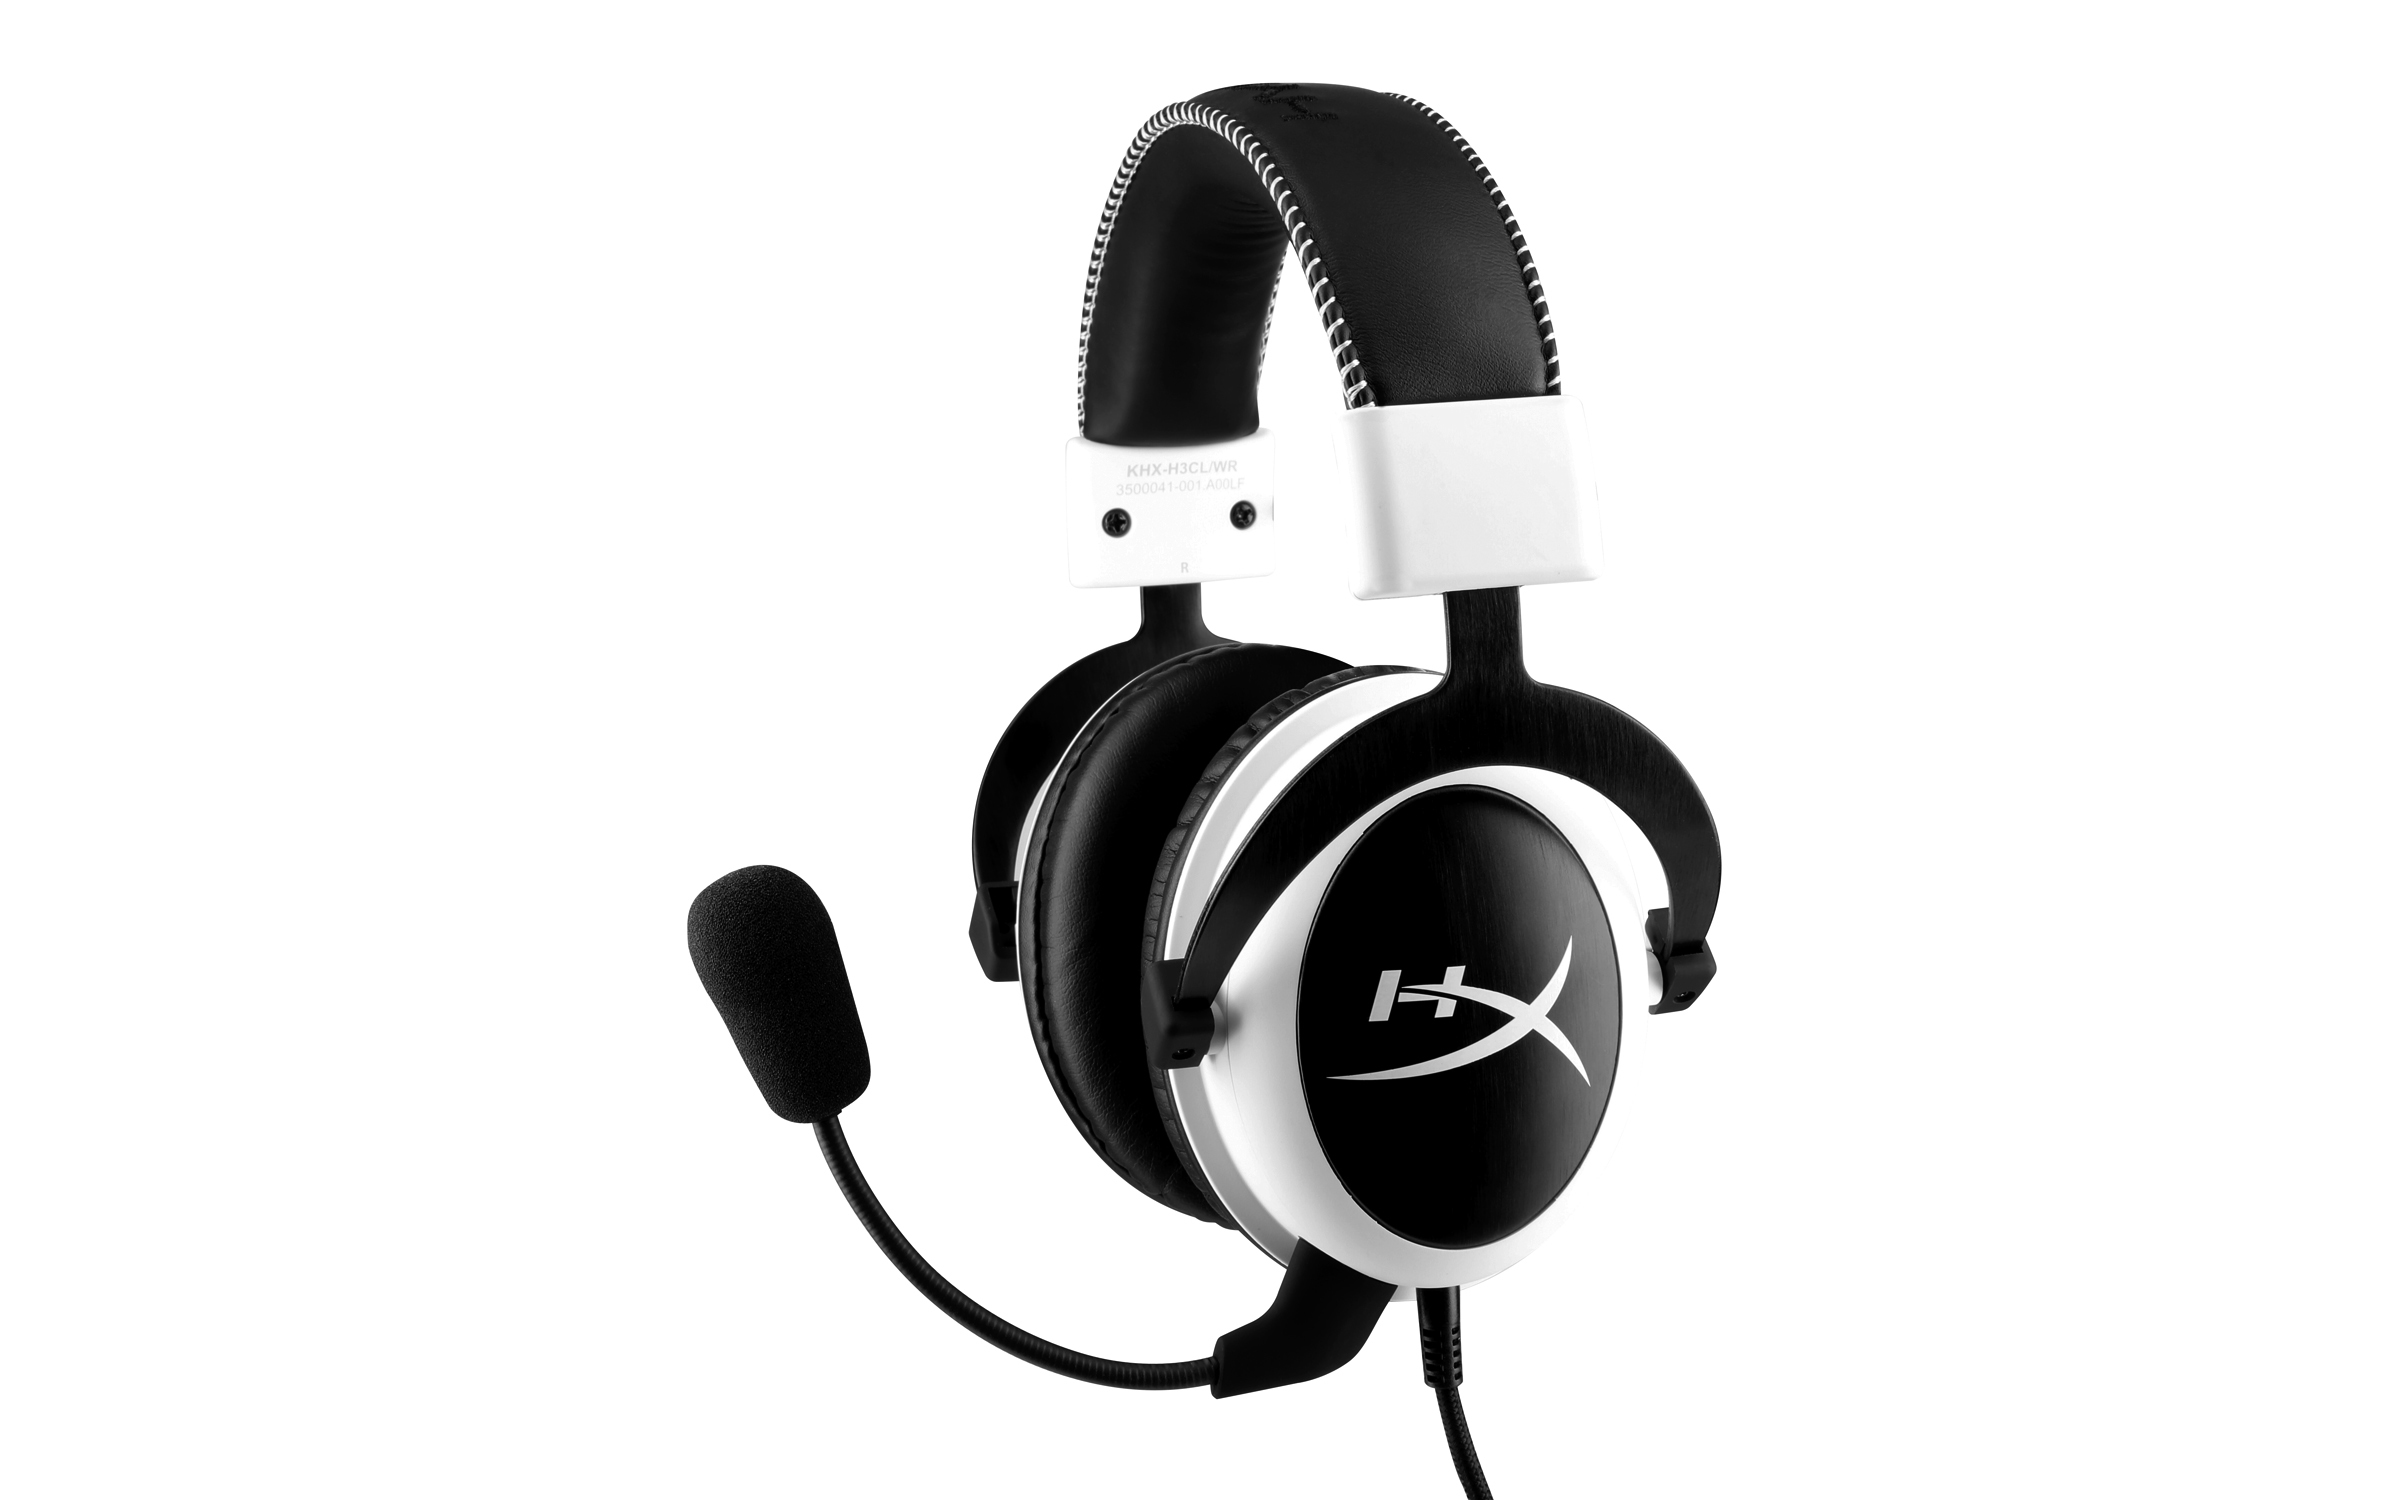 HyperX Cloud headset